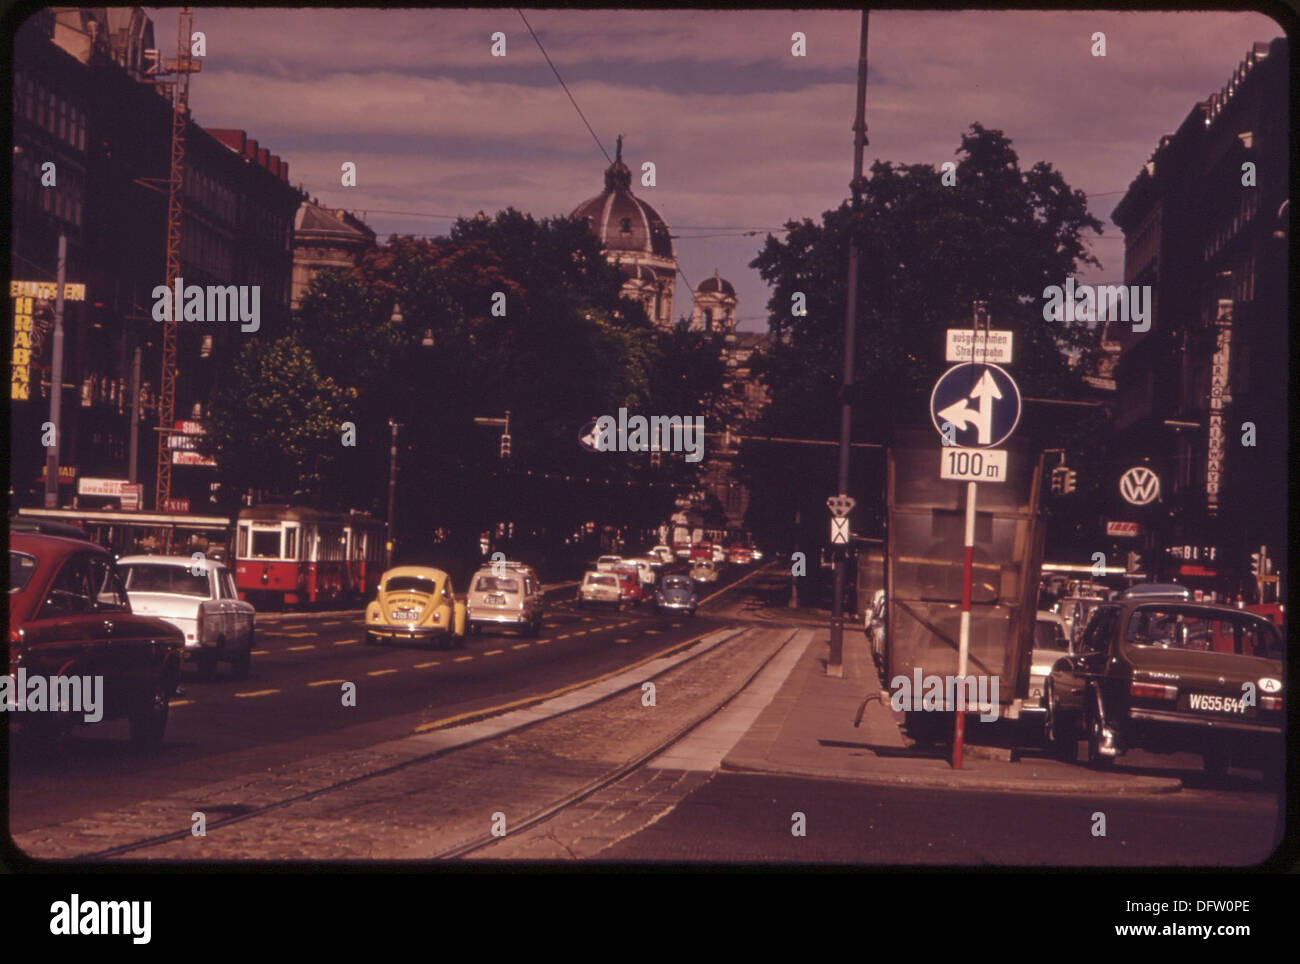 THE RINGSTRASSE, WHICH ENCIRCLES THE INNER CITY, HAS BEEN MADE A ONE-WAY STREET FOR ALL VEHICLES EXCEPT TROLLEYS 549679 - Stock Image